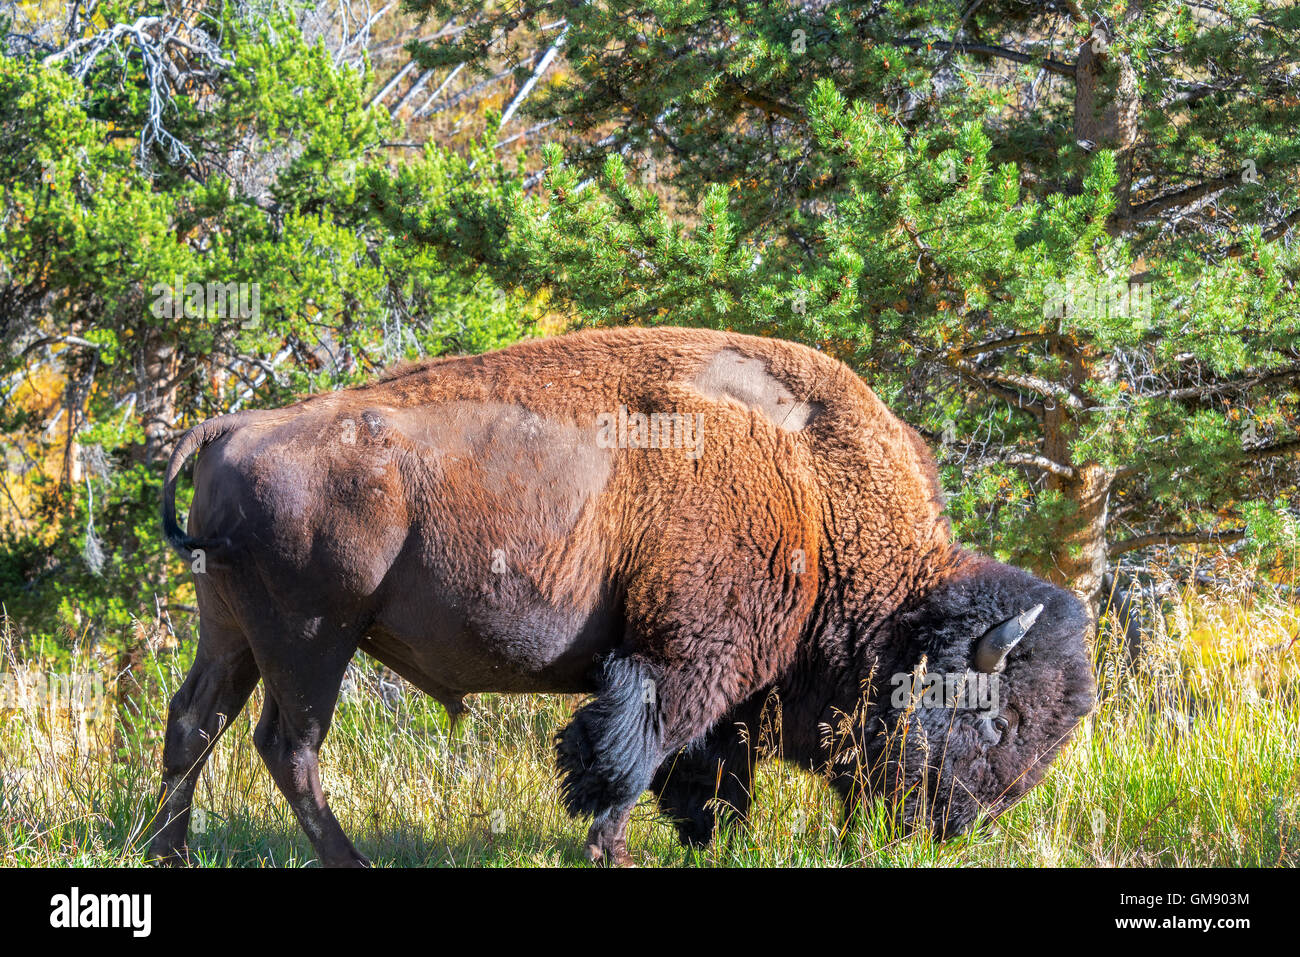 American bison in a forest in Yellowstone National Park - Stock Image